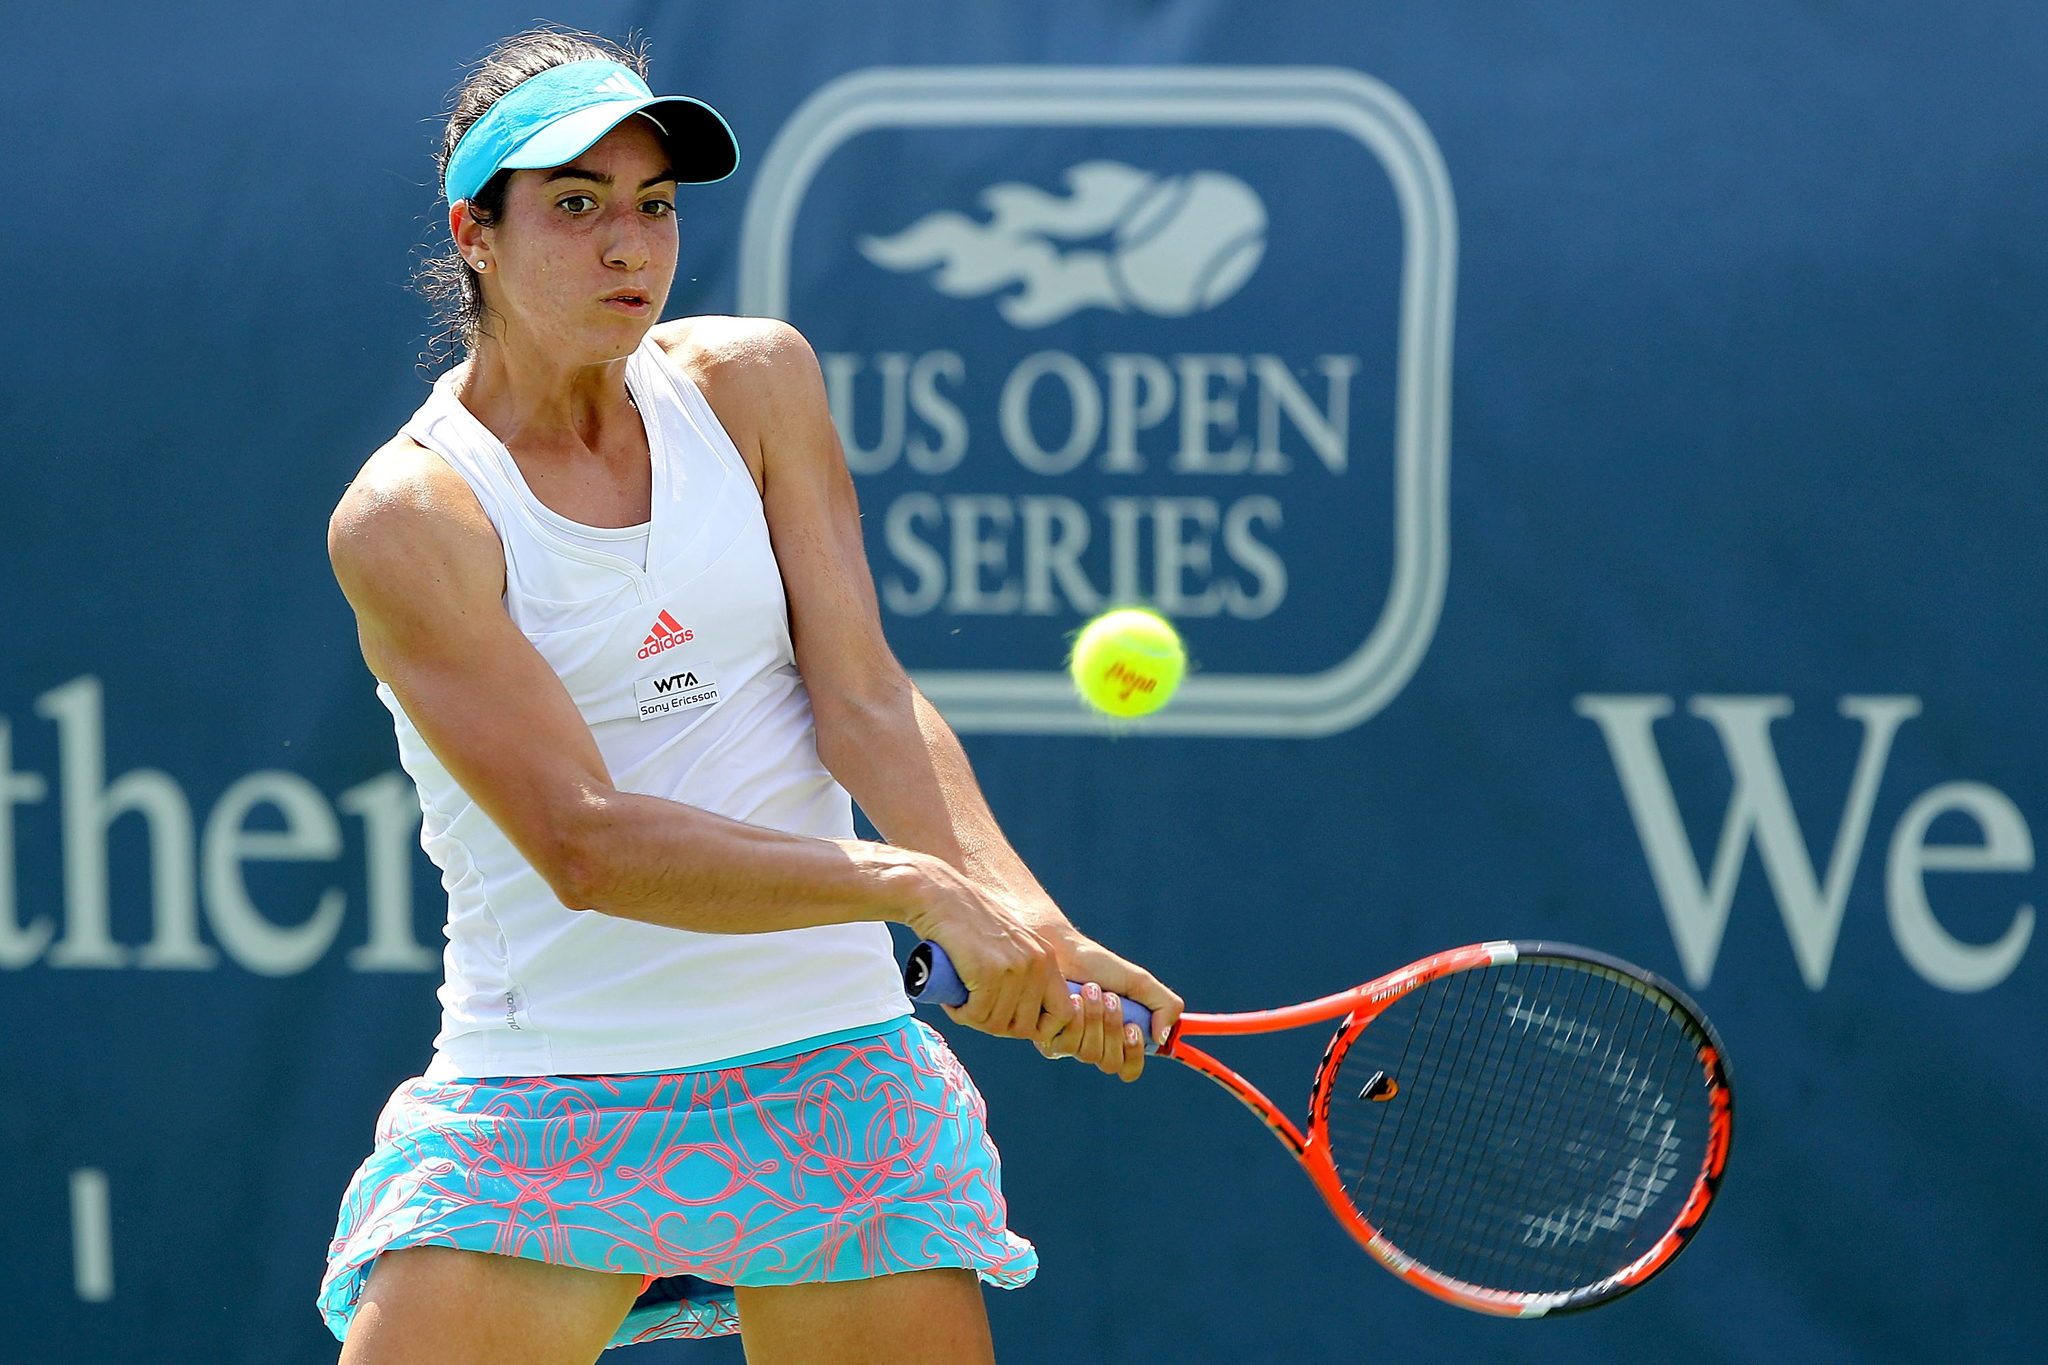 Christina McHale seen playing in the US Open